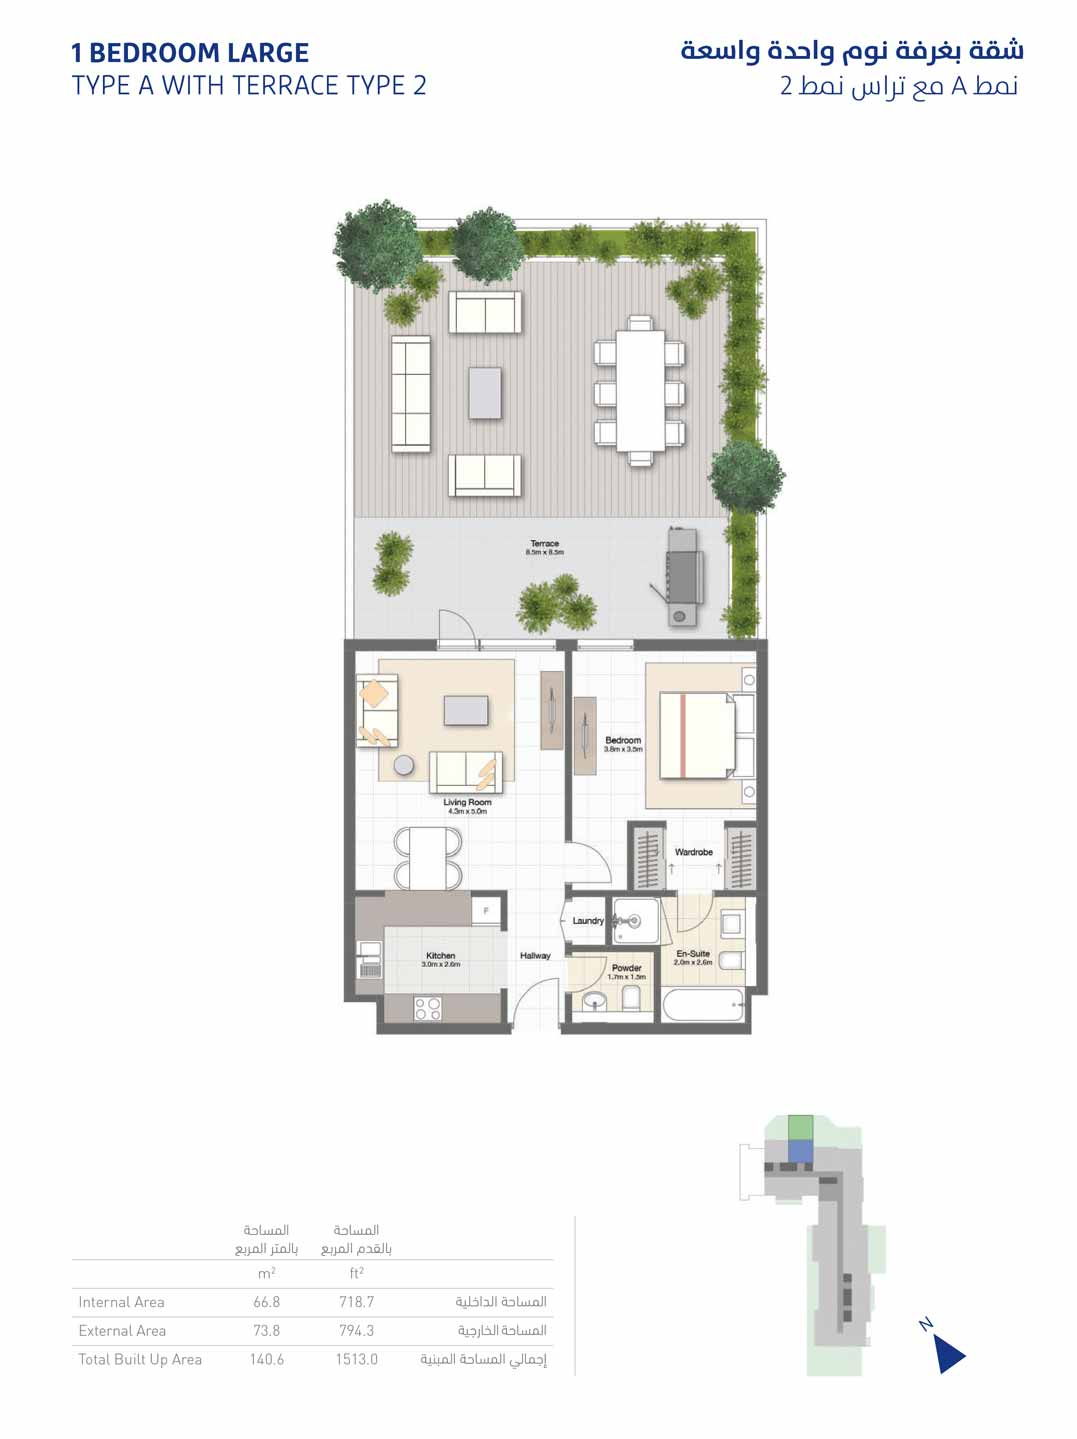 1 bedroom-Large-type-A-terrace-type-2-1513